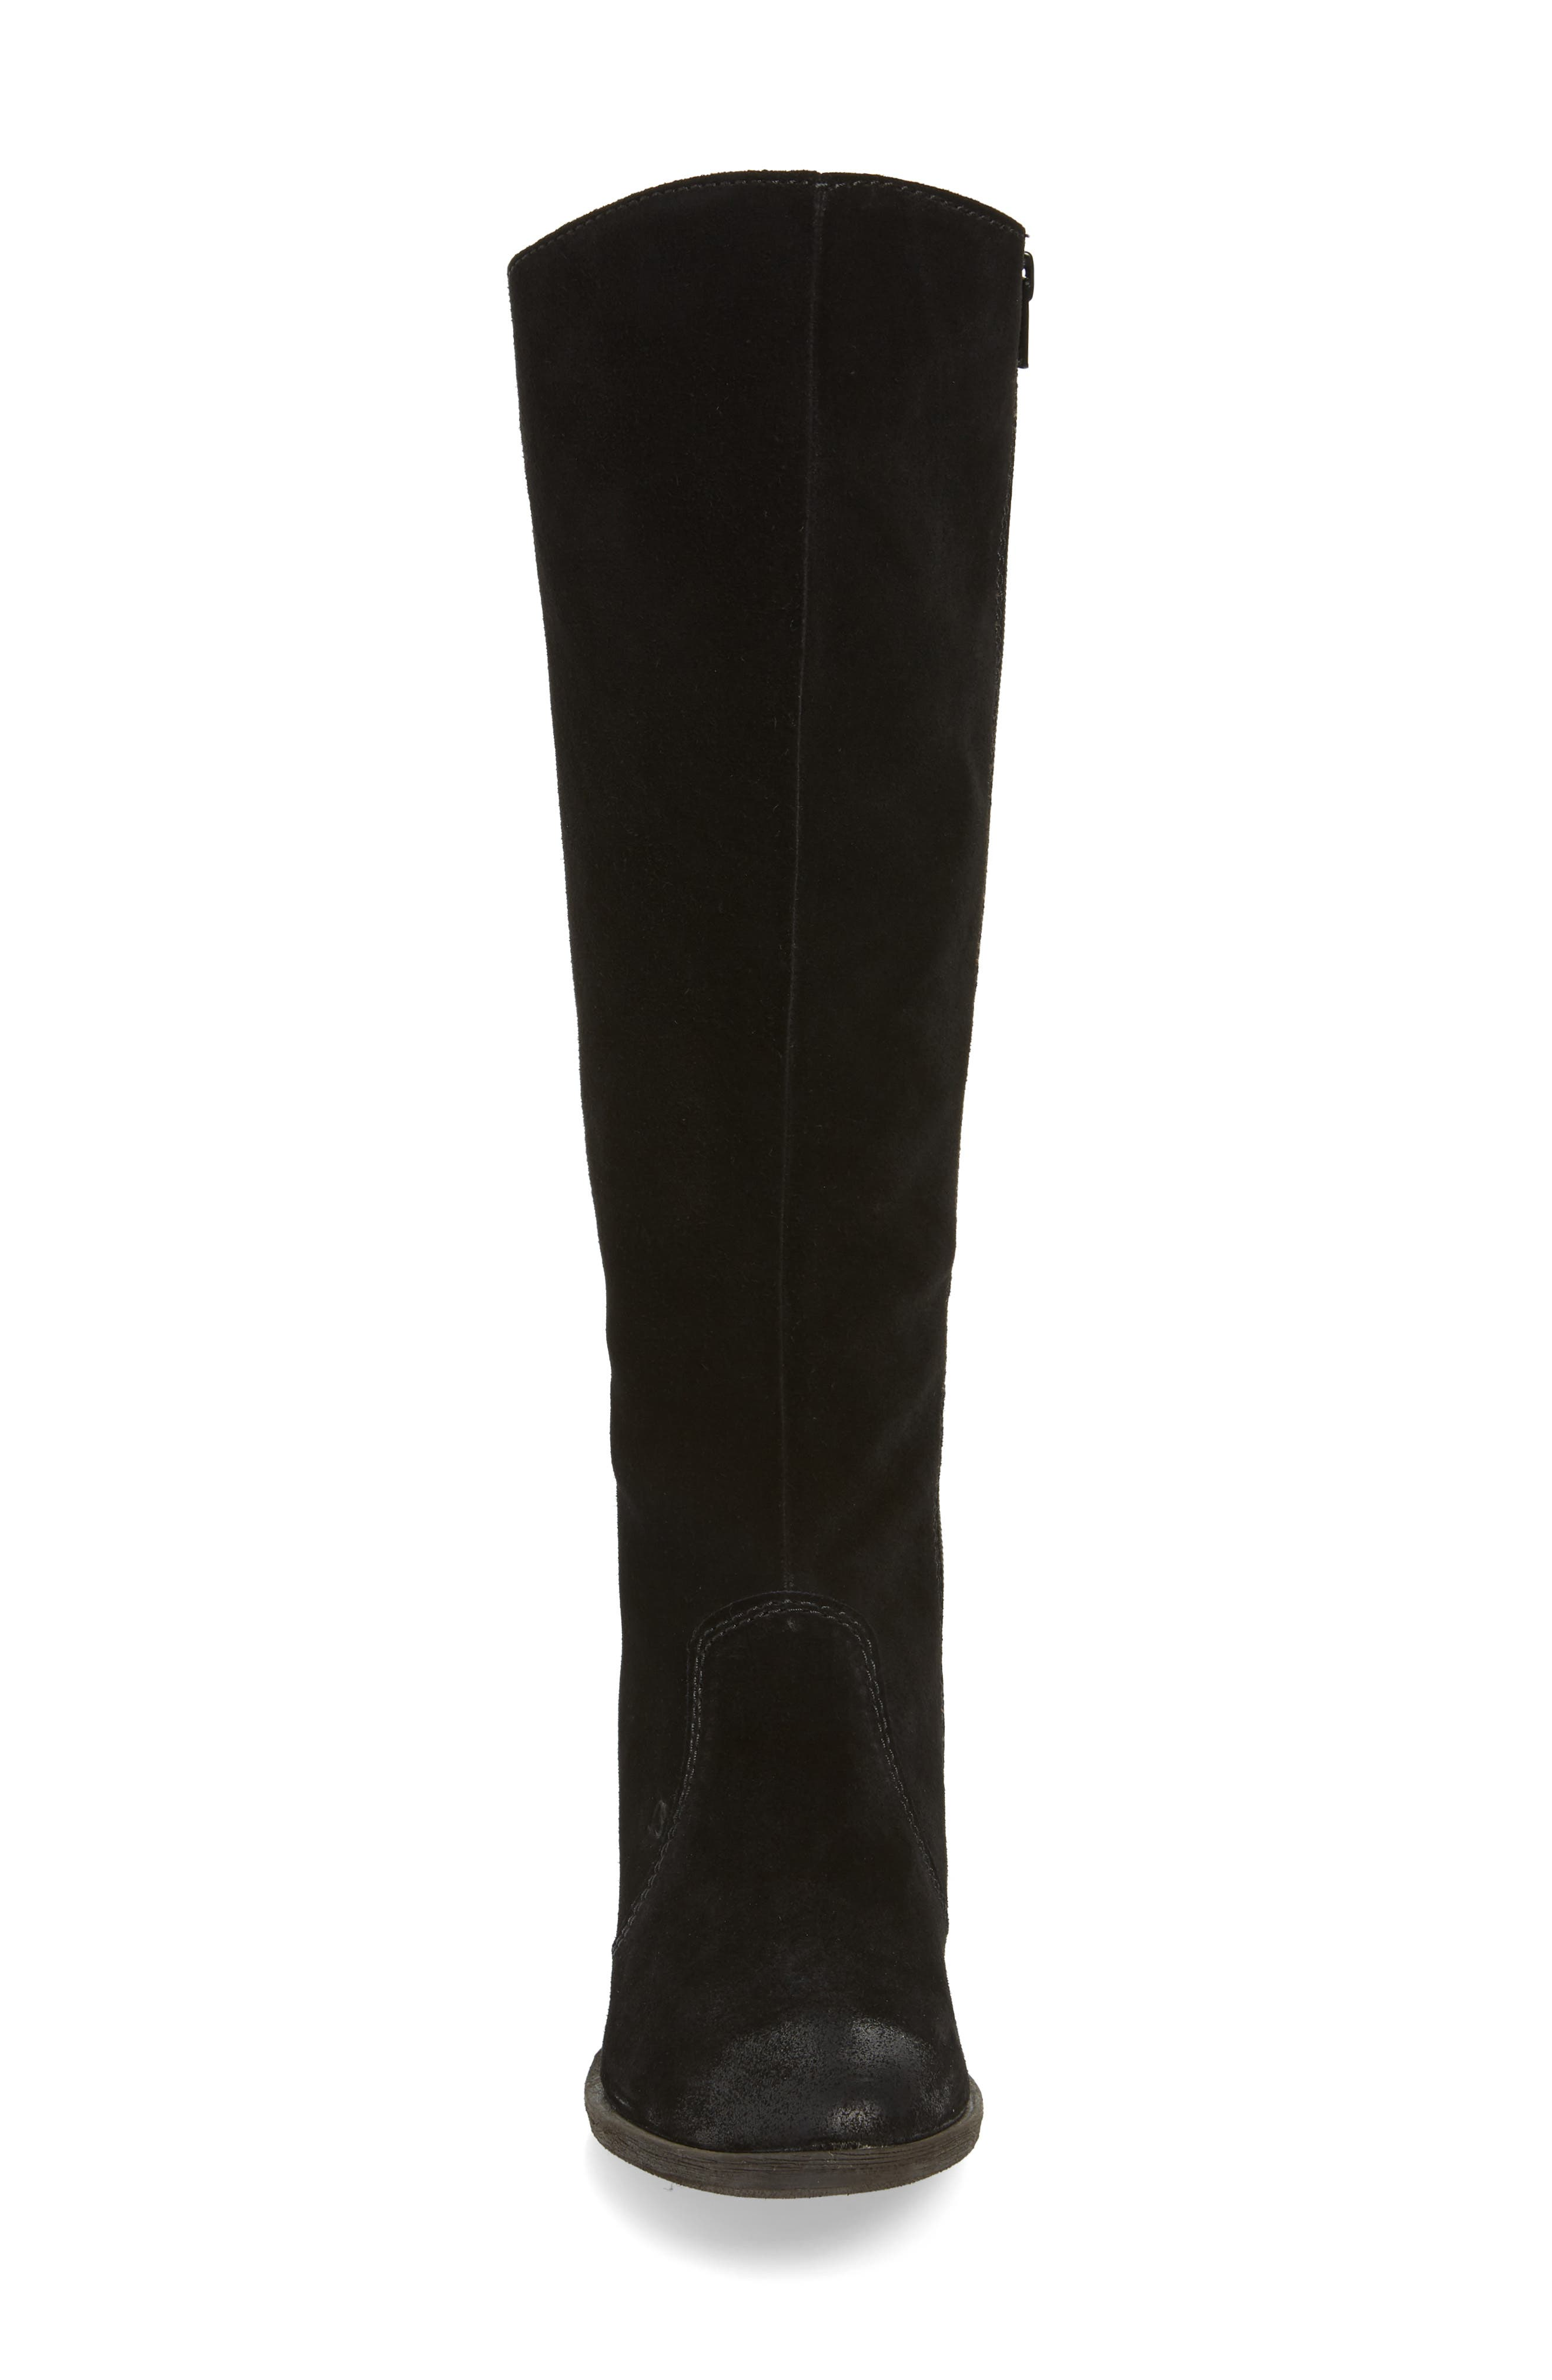 Daphne 33 Knee High Boot,                             Alternate thumbnail 4, color,                             005